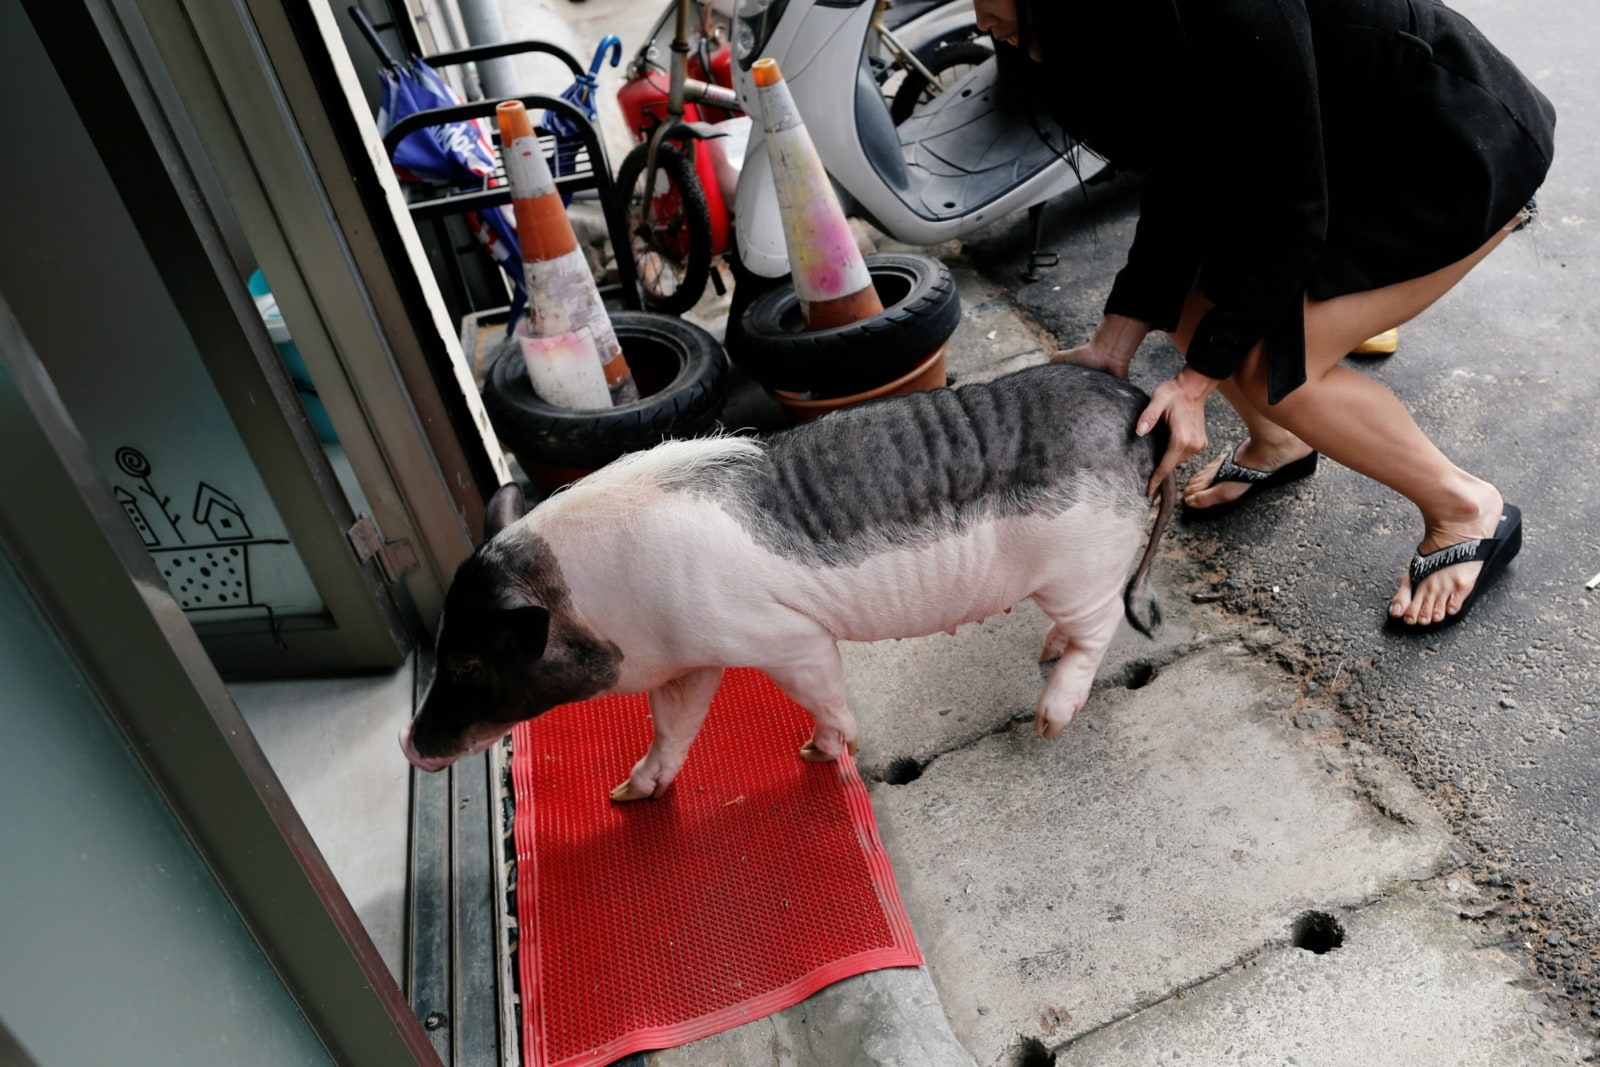 Ge Ge, a pet pig walks into a vet clinic for health inspection, in Taoyuan, Taiwan January 29, 2019. Picture taken January 30, 2019. REUTERS/Tyrone Siu